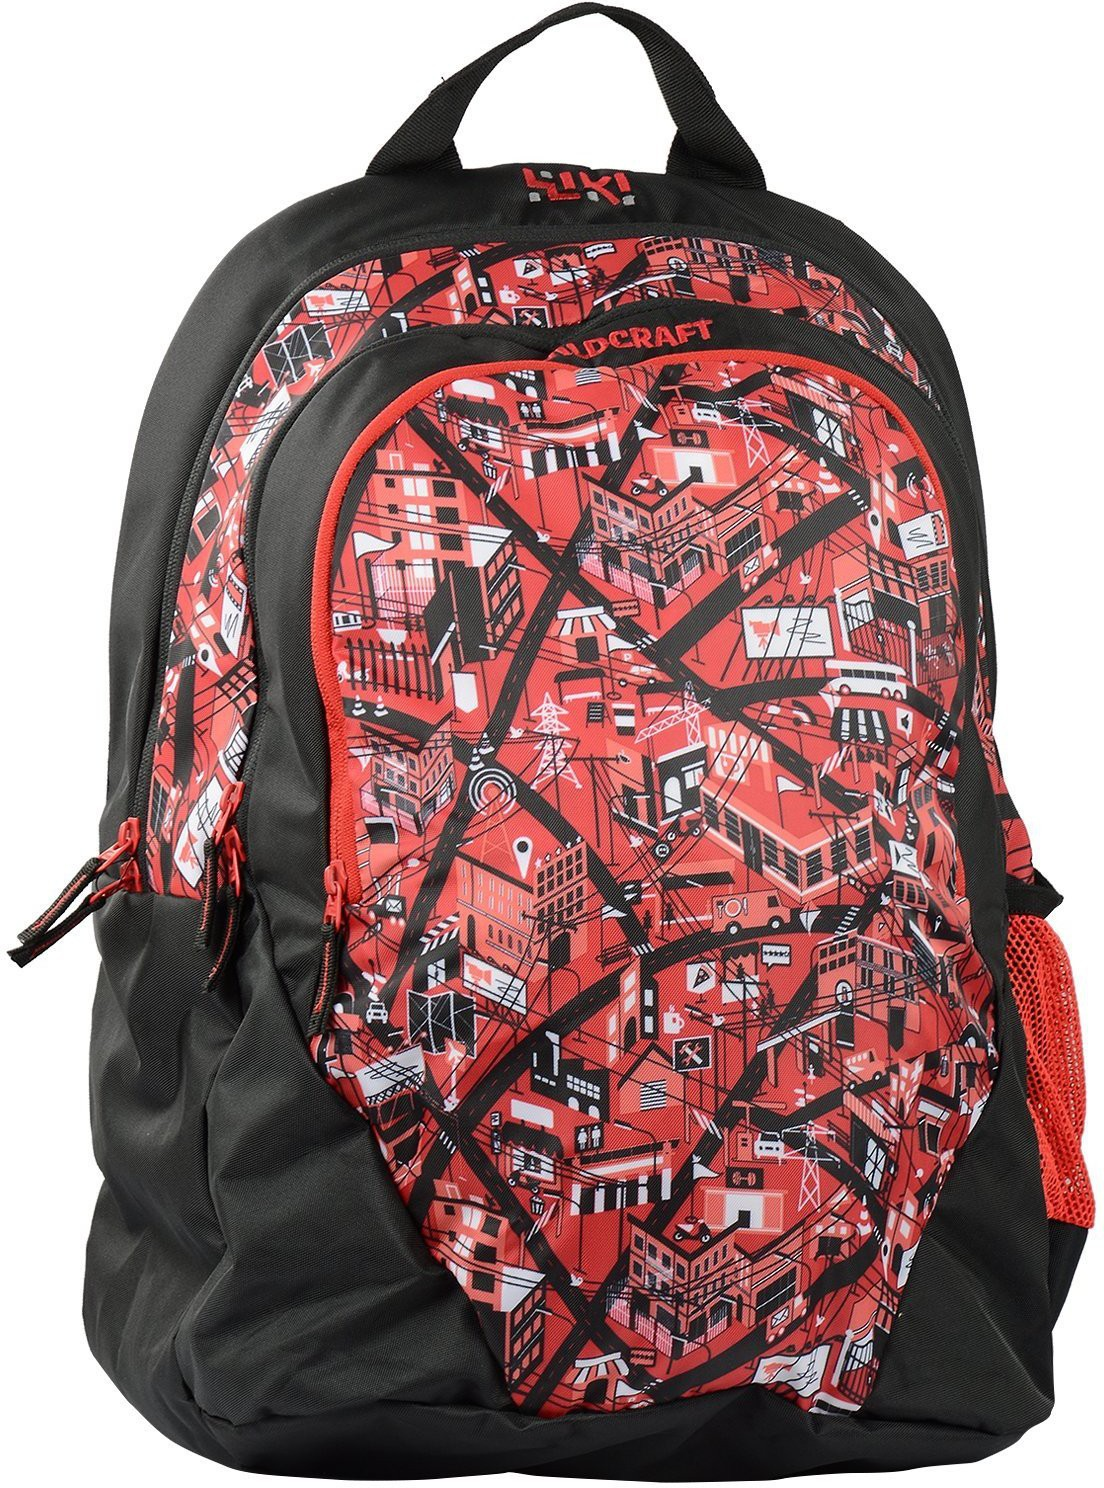 Deals - Raipur - Wildcraft, Nike... <br> Backpacks & more<br> Category - bags_wallets_belts<br> Business - Flipkart.com